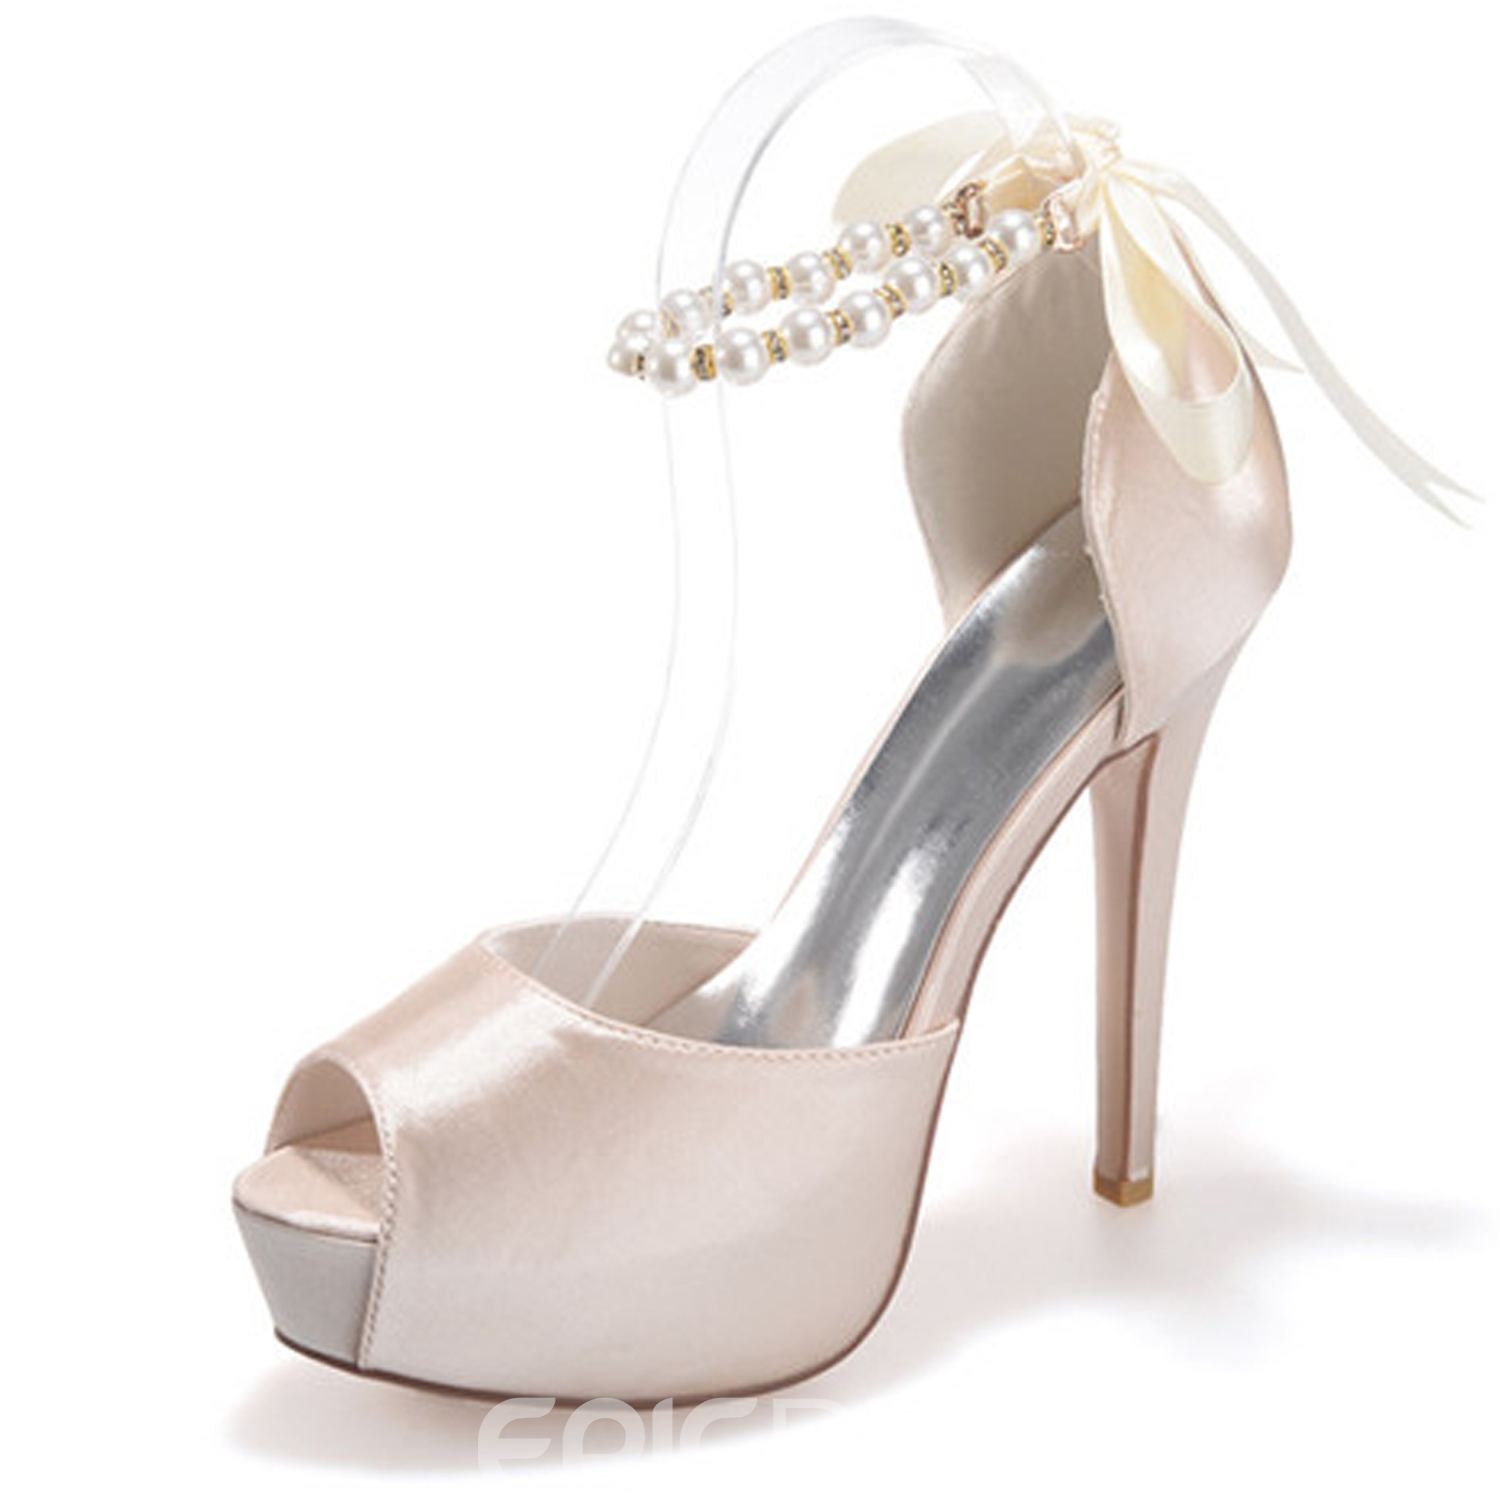 Ericdress Comfortable Pearls Peep Toe High Heel Wedding Shoes